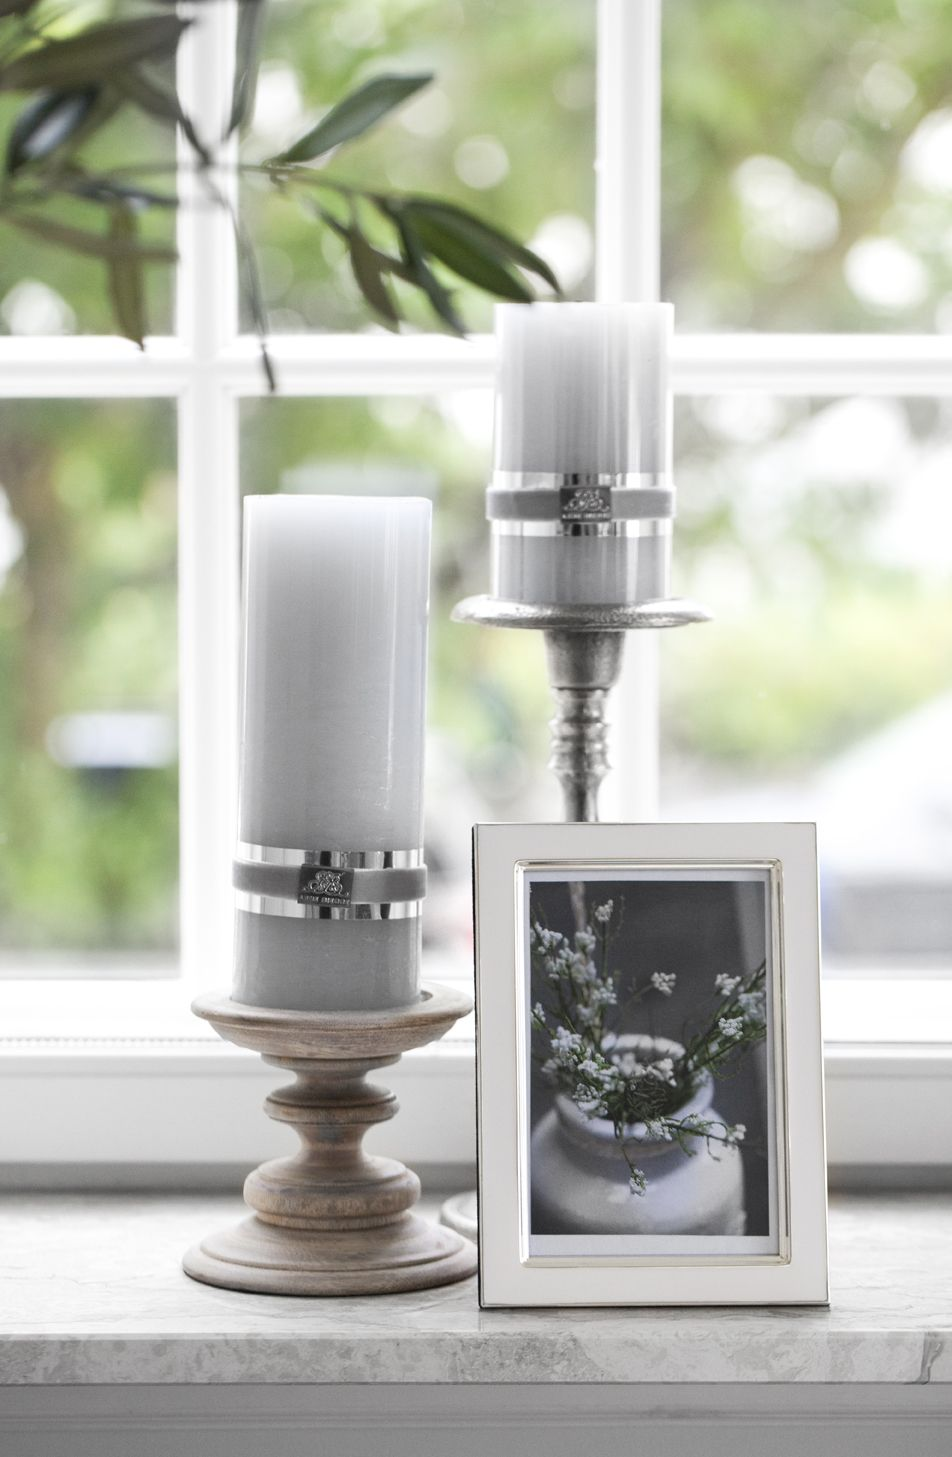 RUSTIC candles, AUSTIN frame and DARLA candlestick. Lene Bjerre, spring 2014.